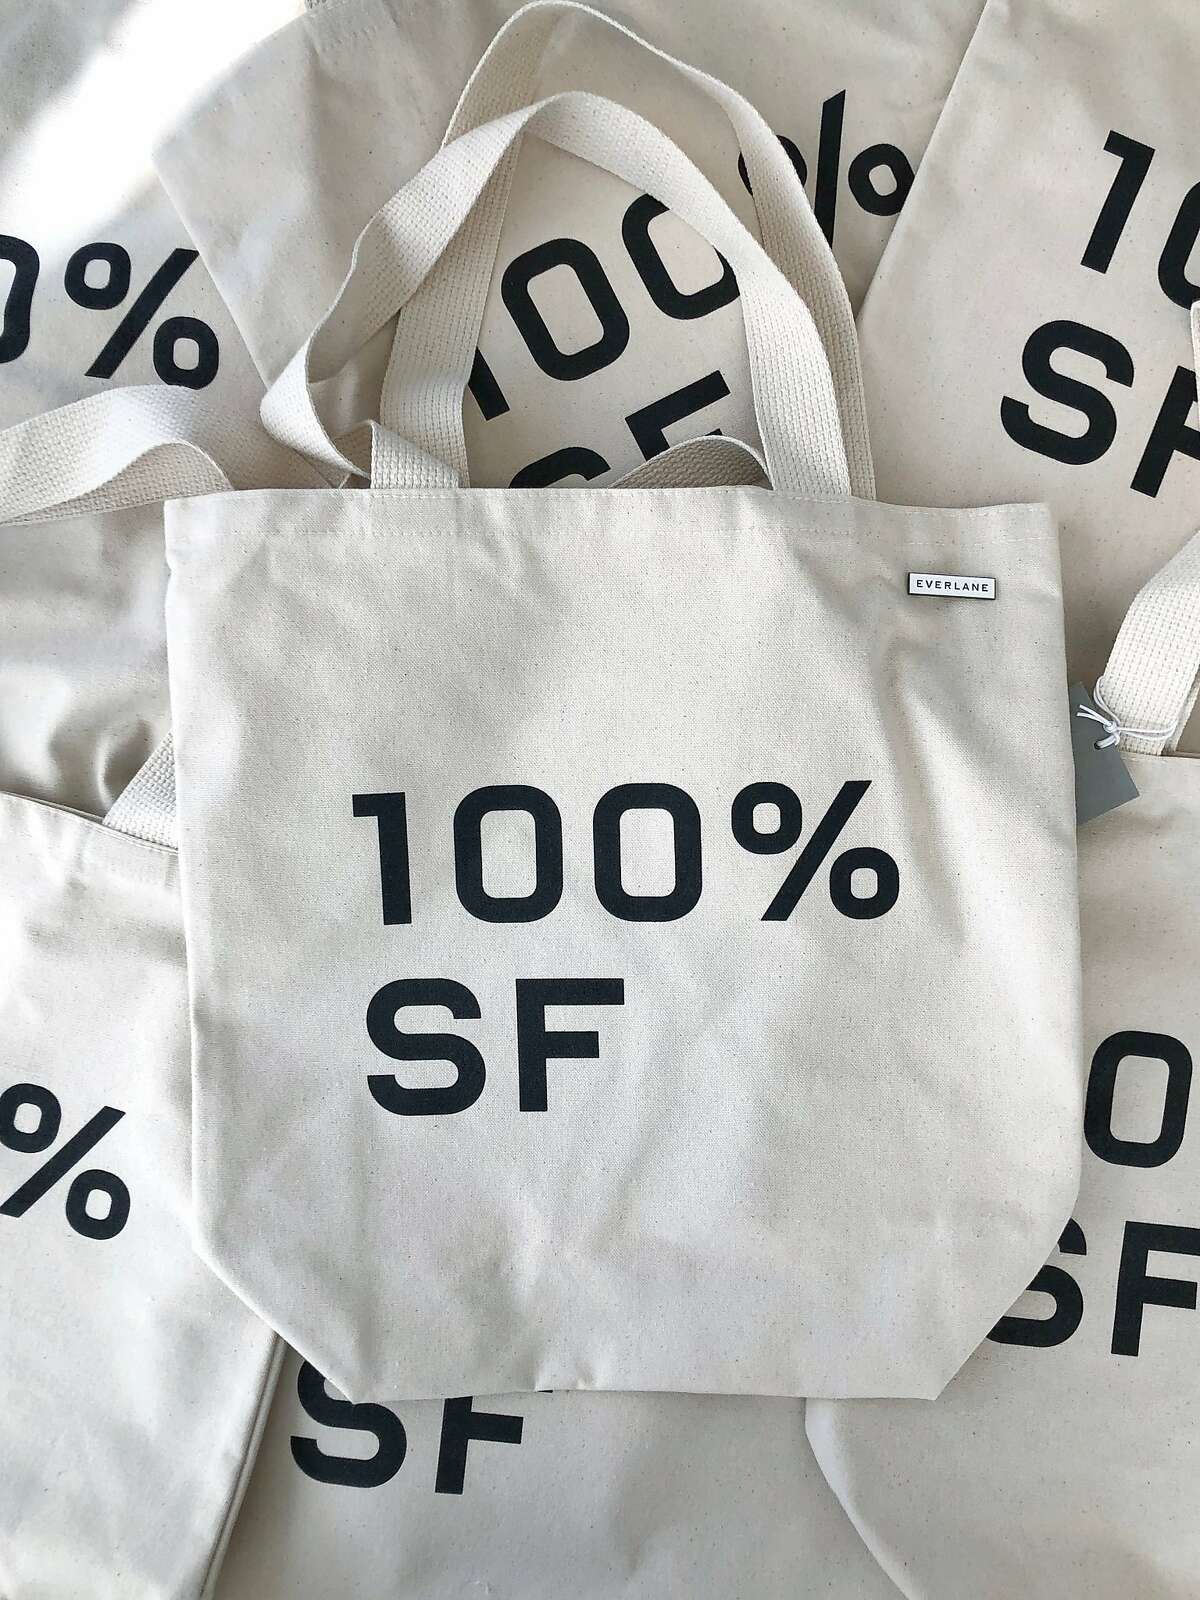 Everlane�is opening a permanent San Francisco brick-and-mortar store at 416 Valencia St., and will offer T-shirts and bags exclusive to the location.